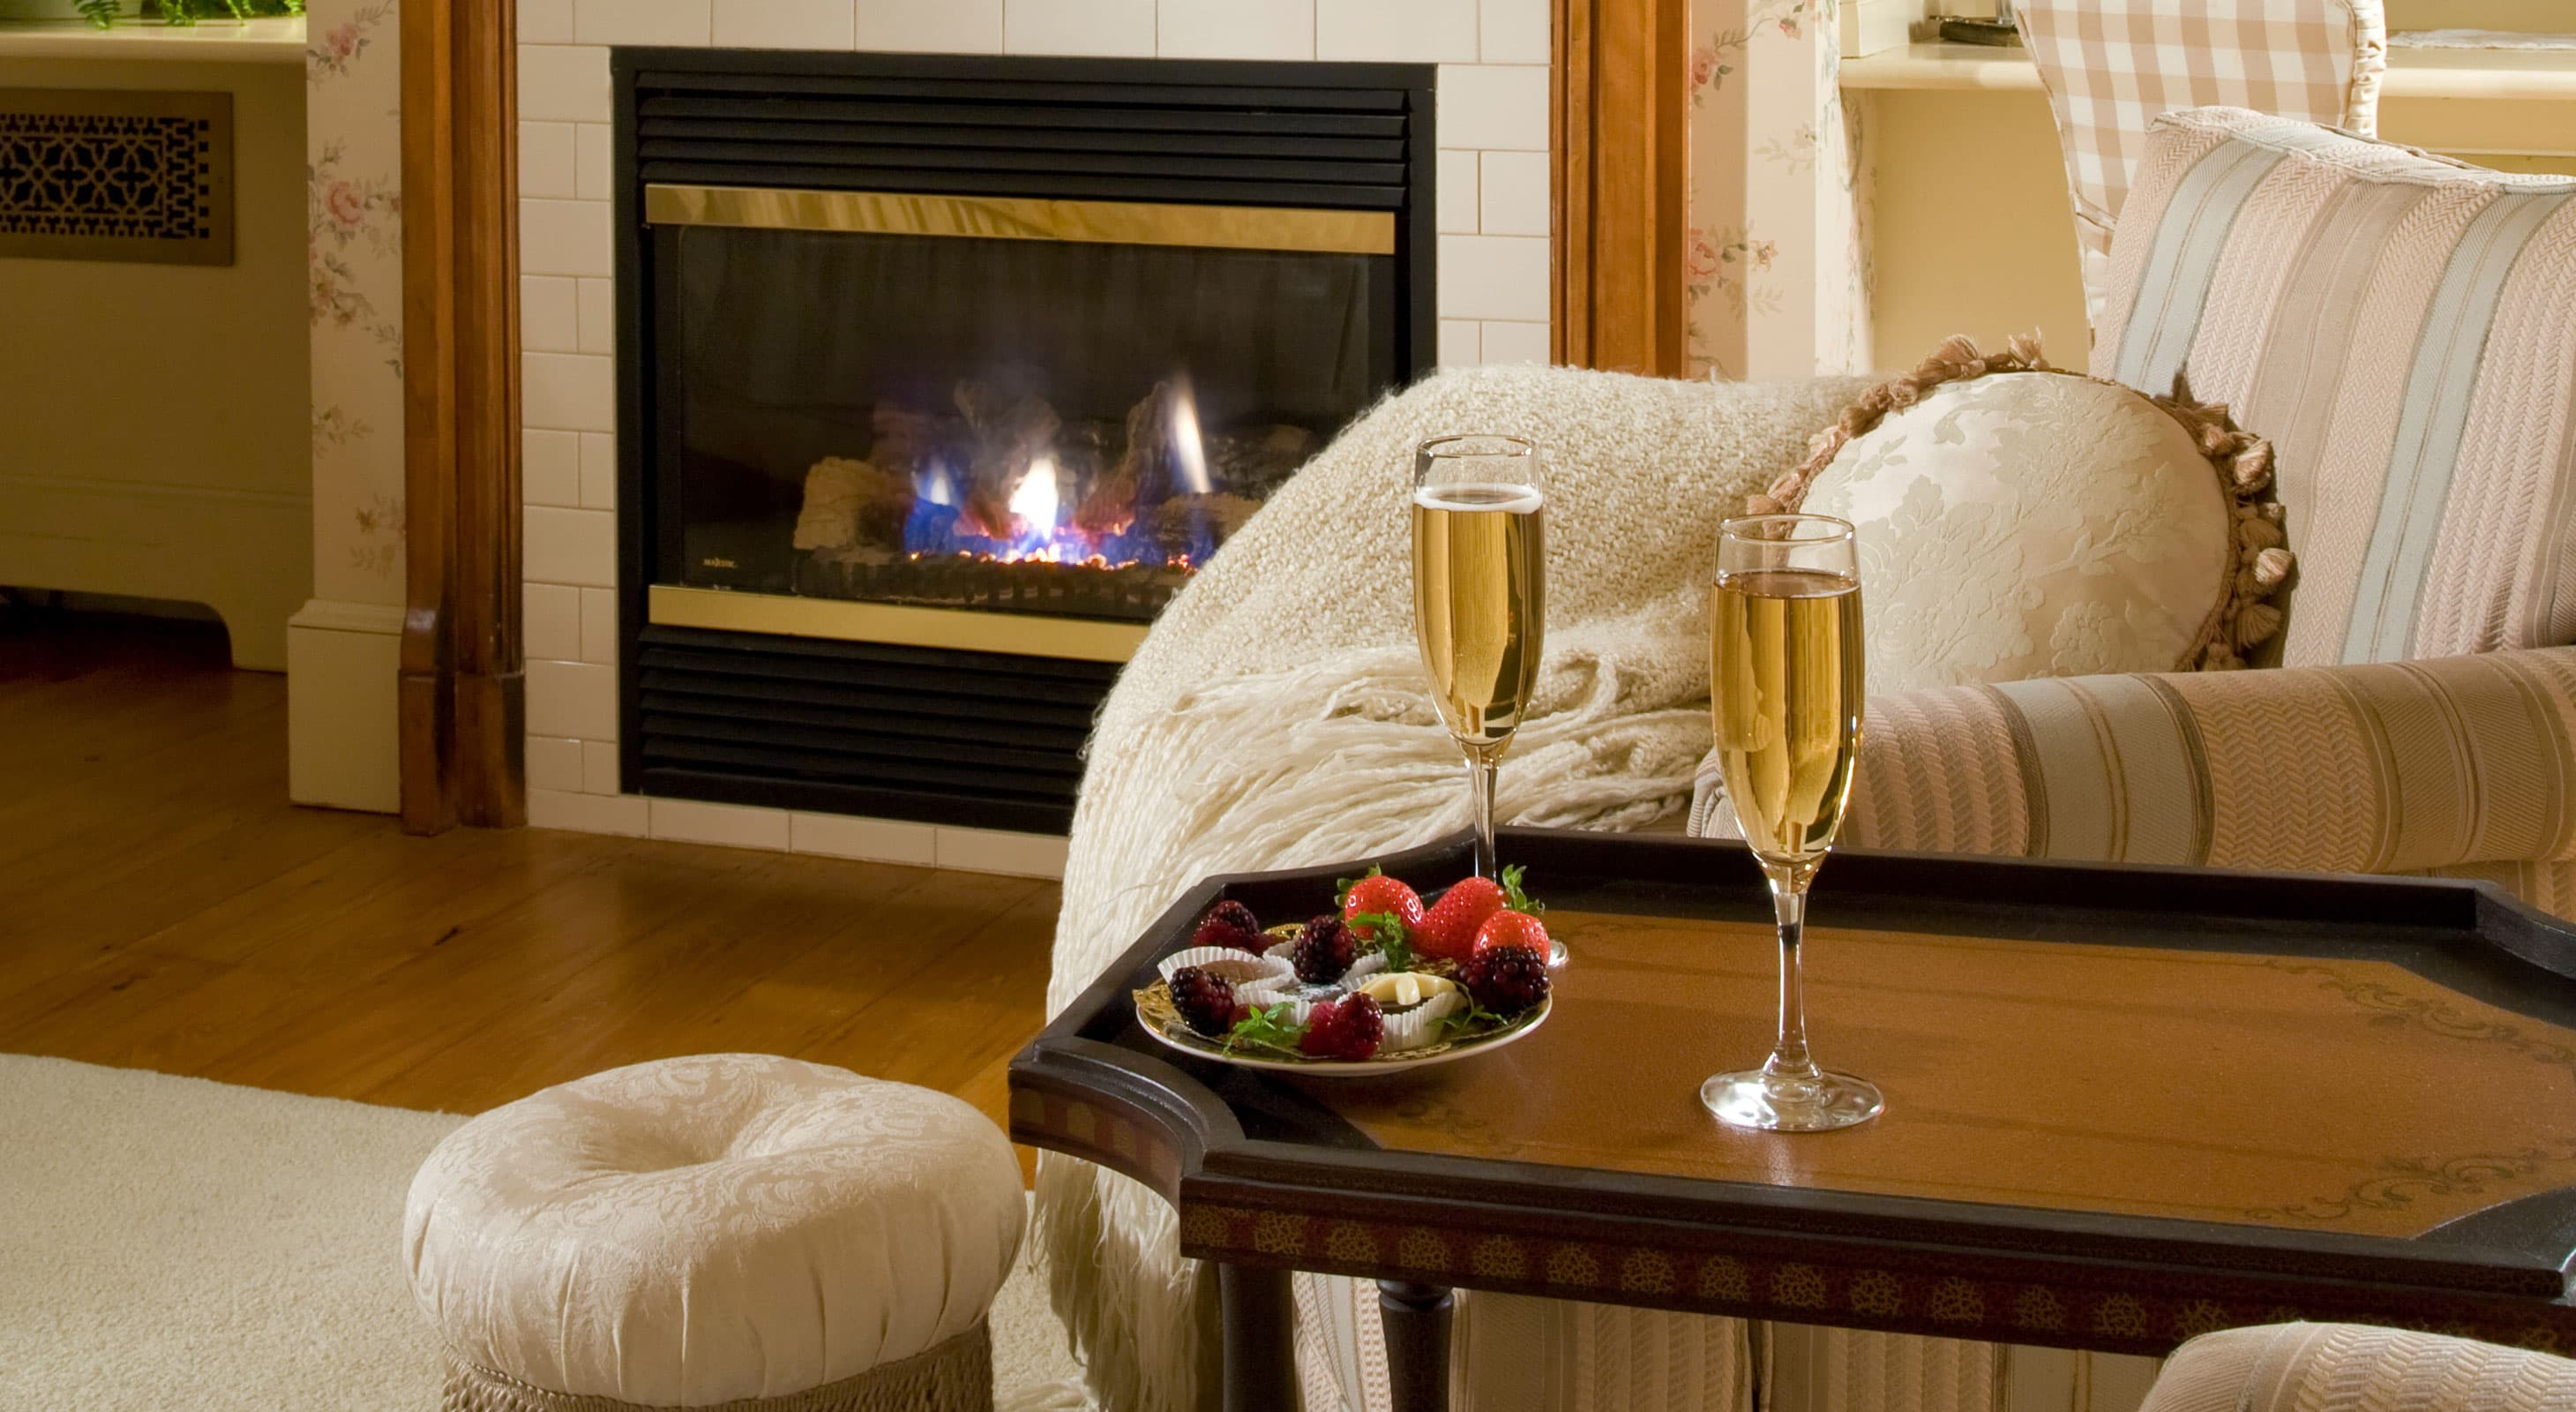 Champagne for two with chocolate strawberries in front of the fireplace in Room 3 at our bed and breakfast near Camden